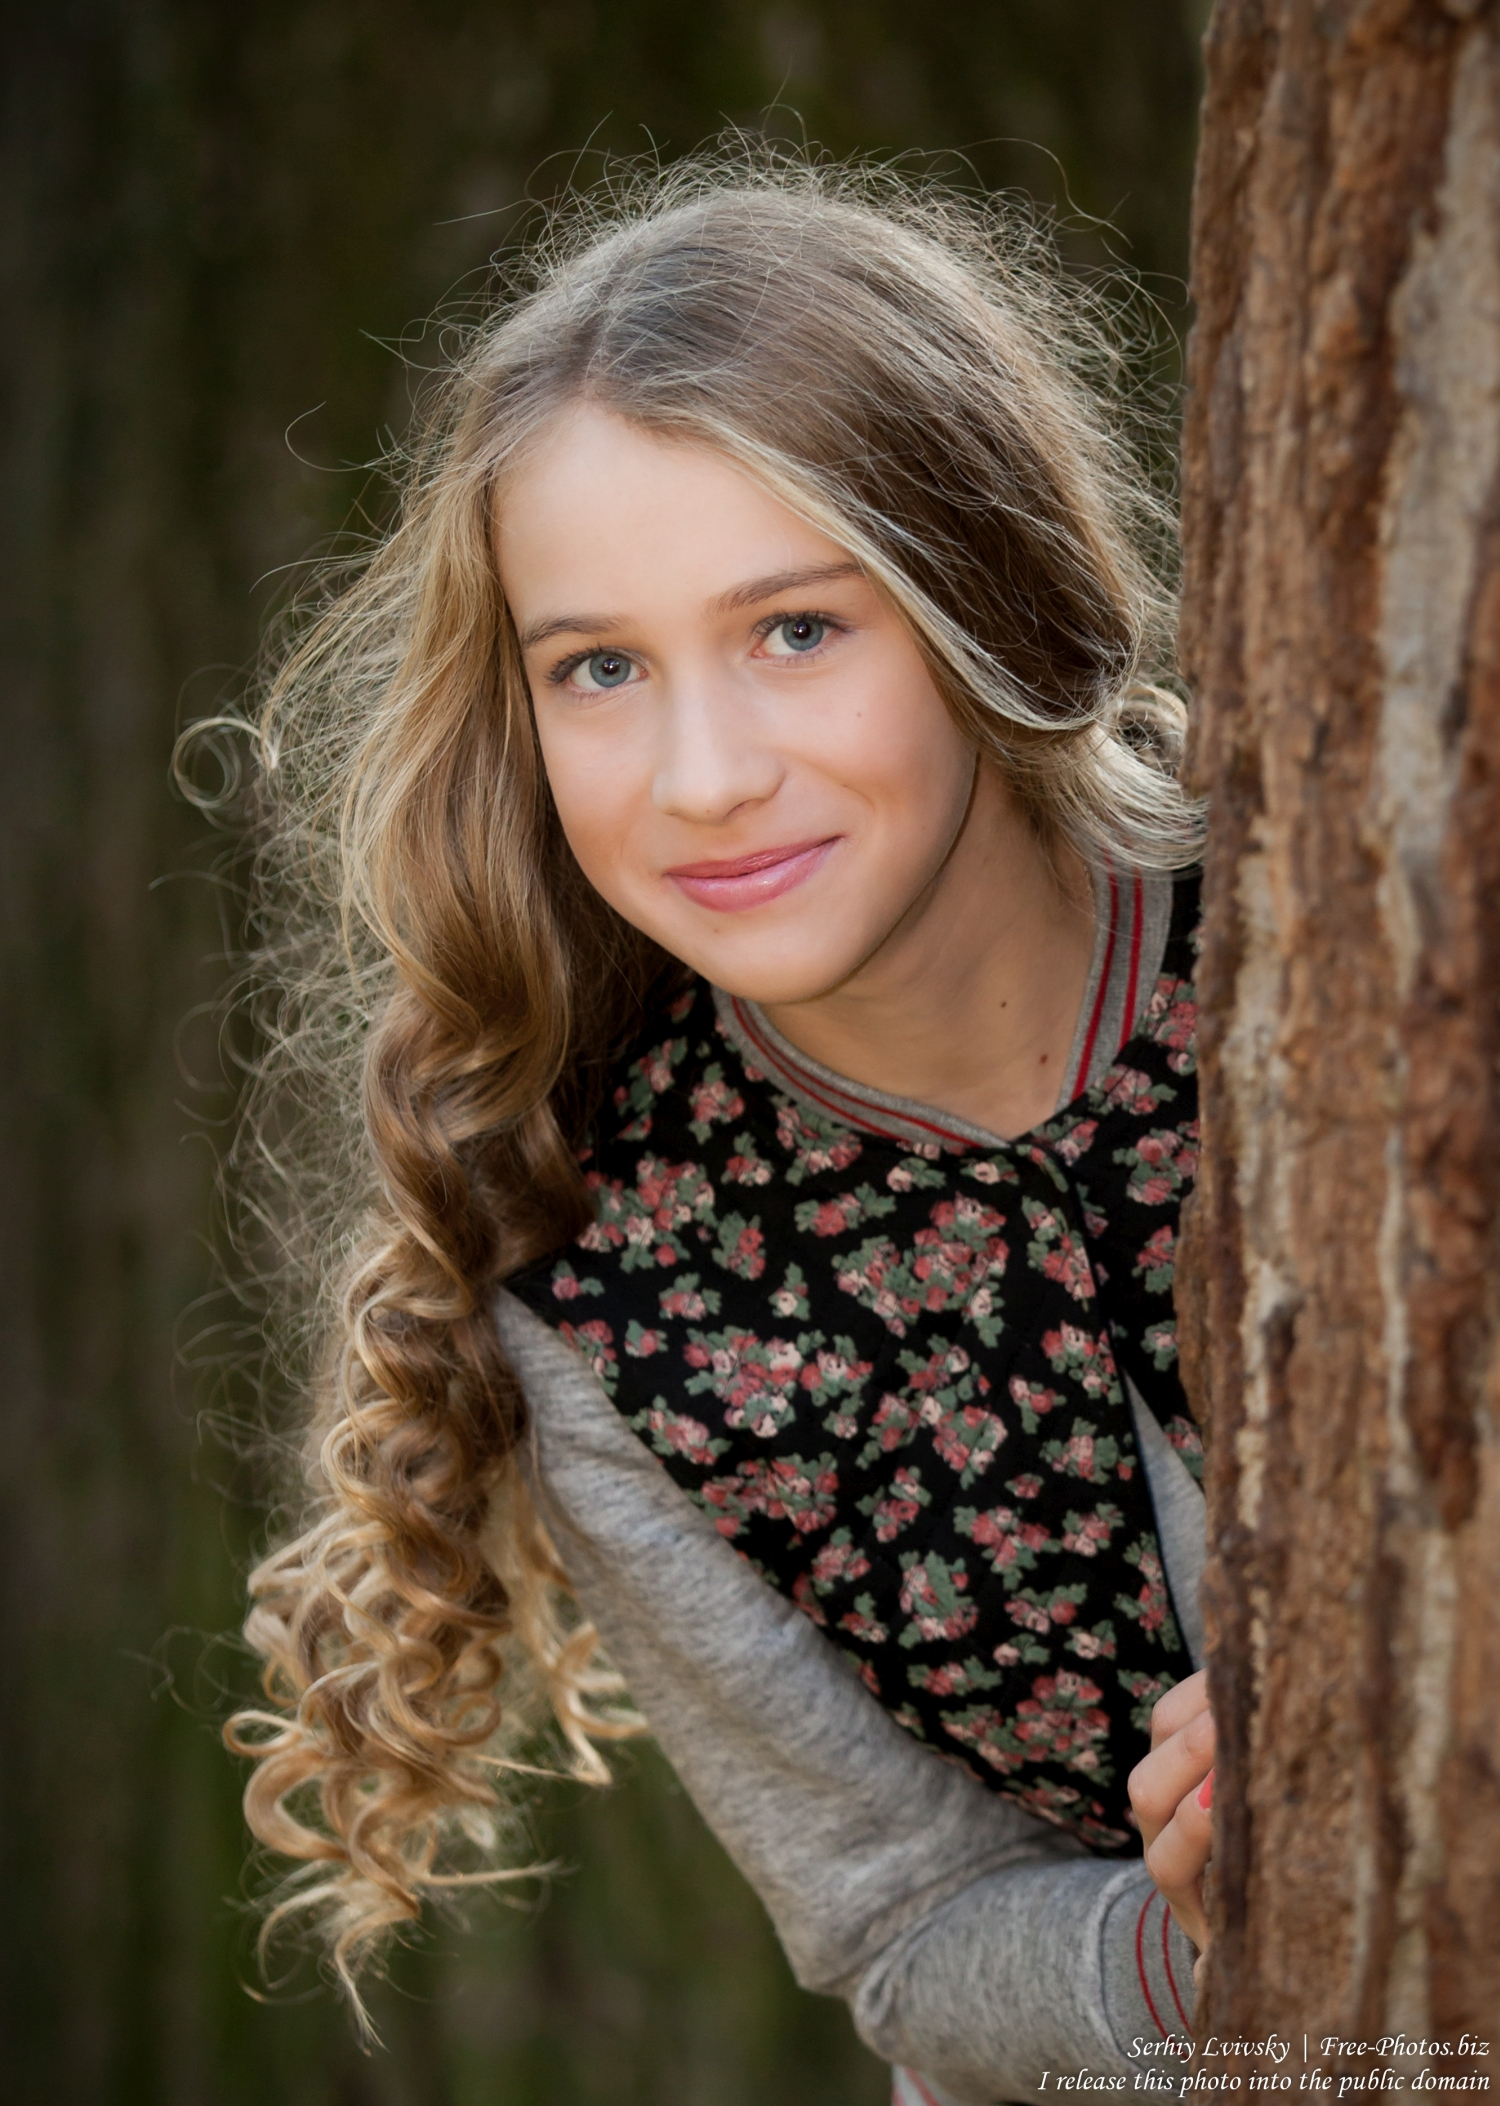 a_13-year-old_girl_photographed_by_serhiy_lvivsky_in_october_2015_06